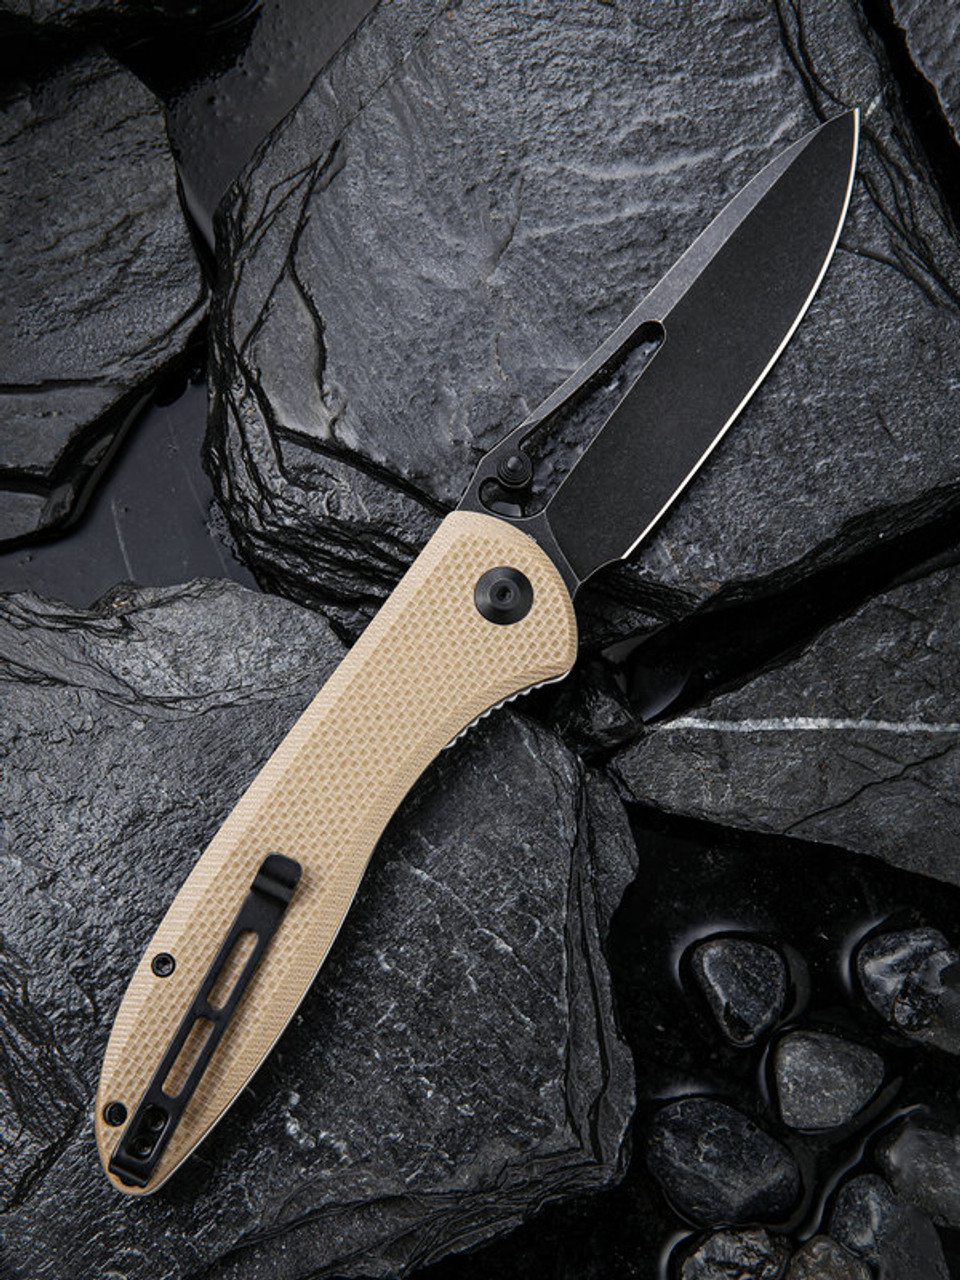 "Civivi Picaro Linerlock Folder C916B, 3.94"" D2 Black Stonewash Drop Point Plain Blade, Tan G-10 Handle"